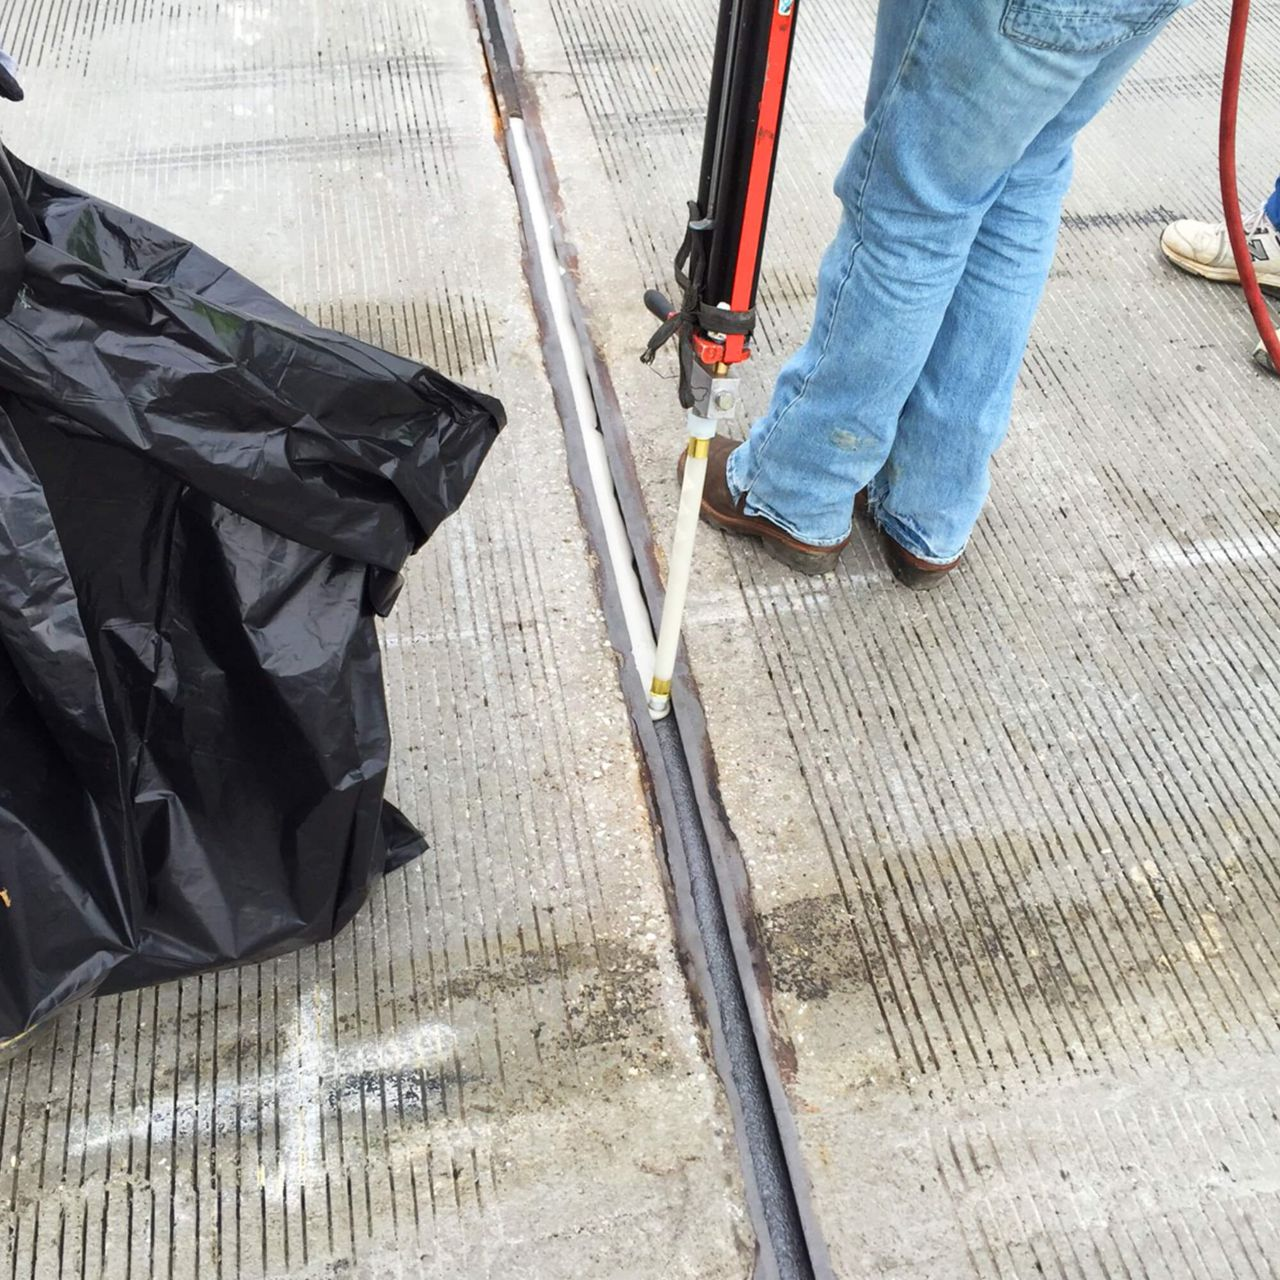 joint sealant being applied